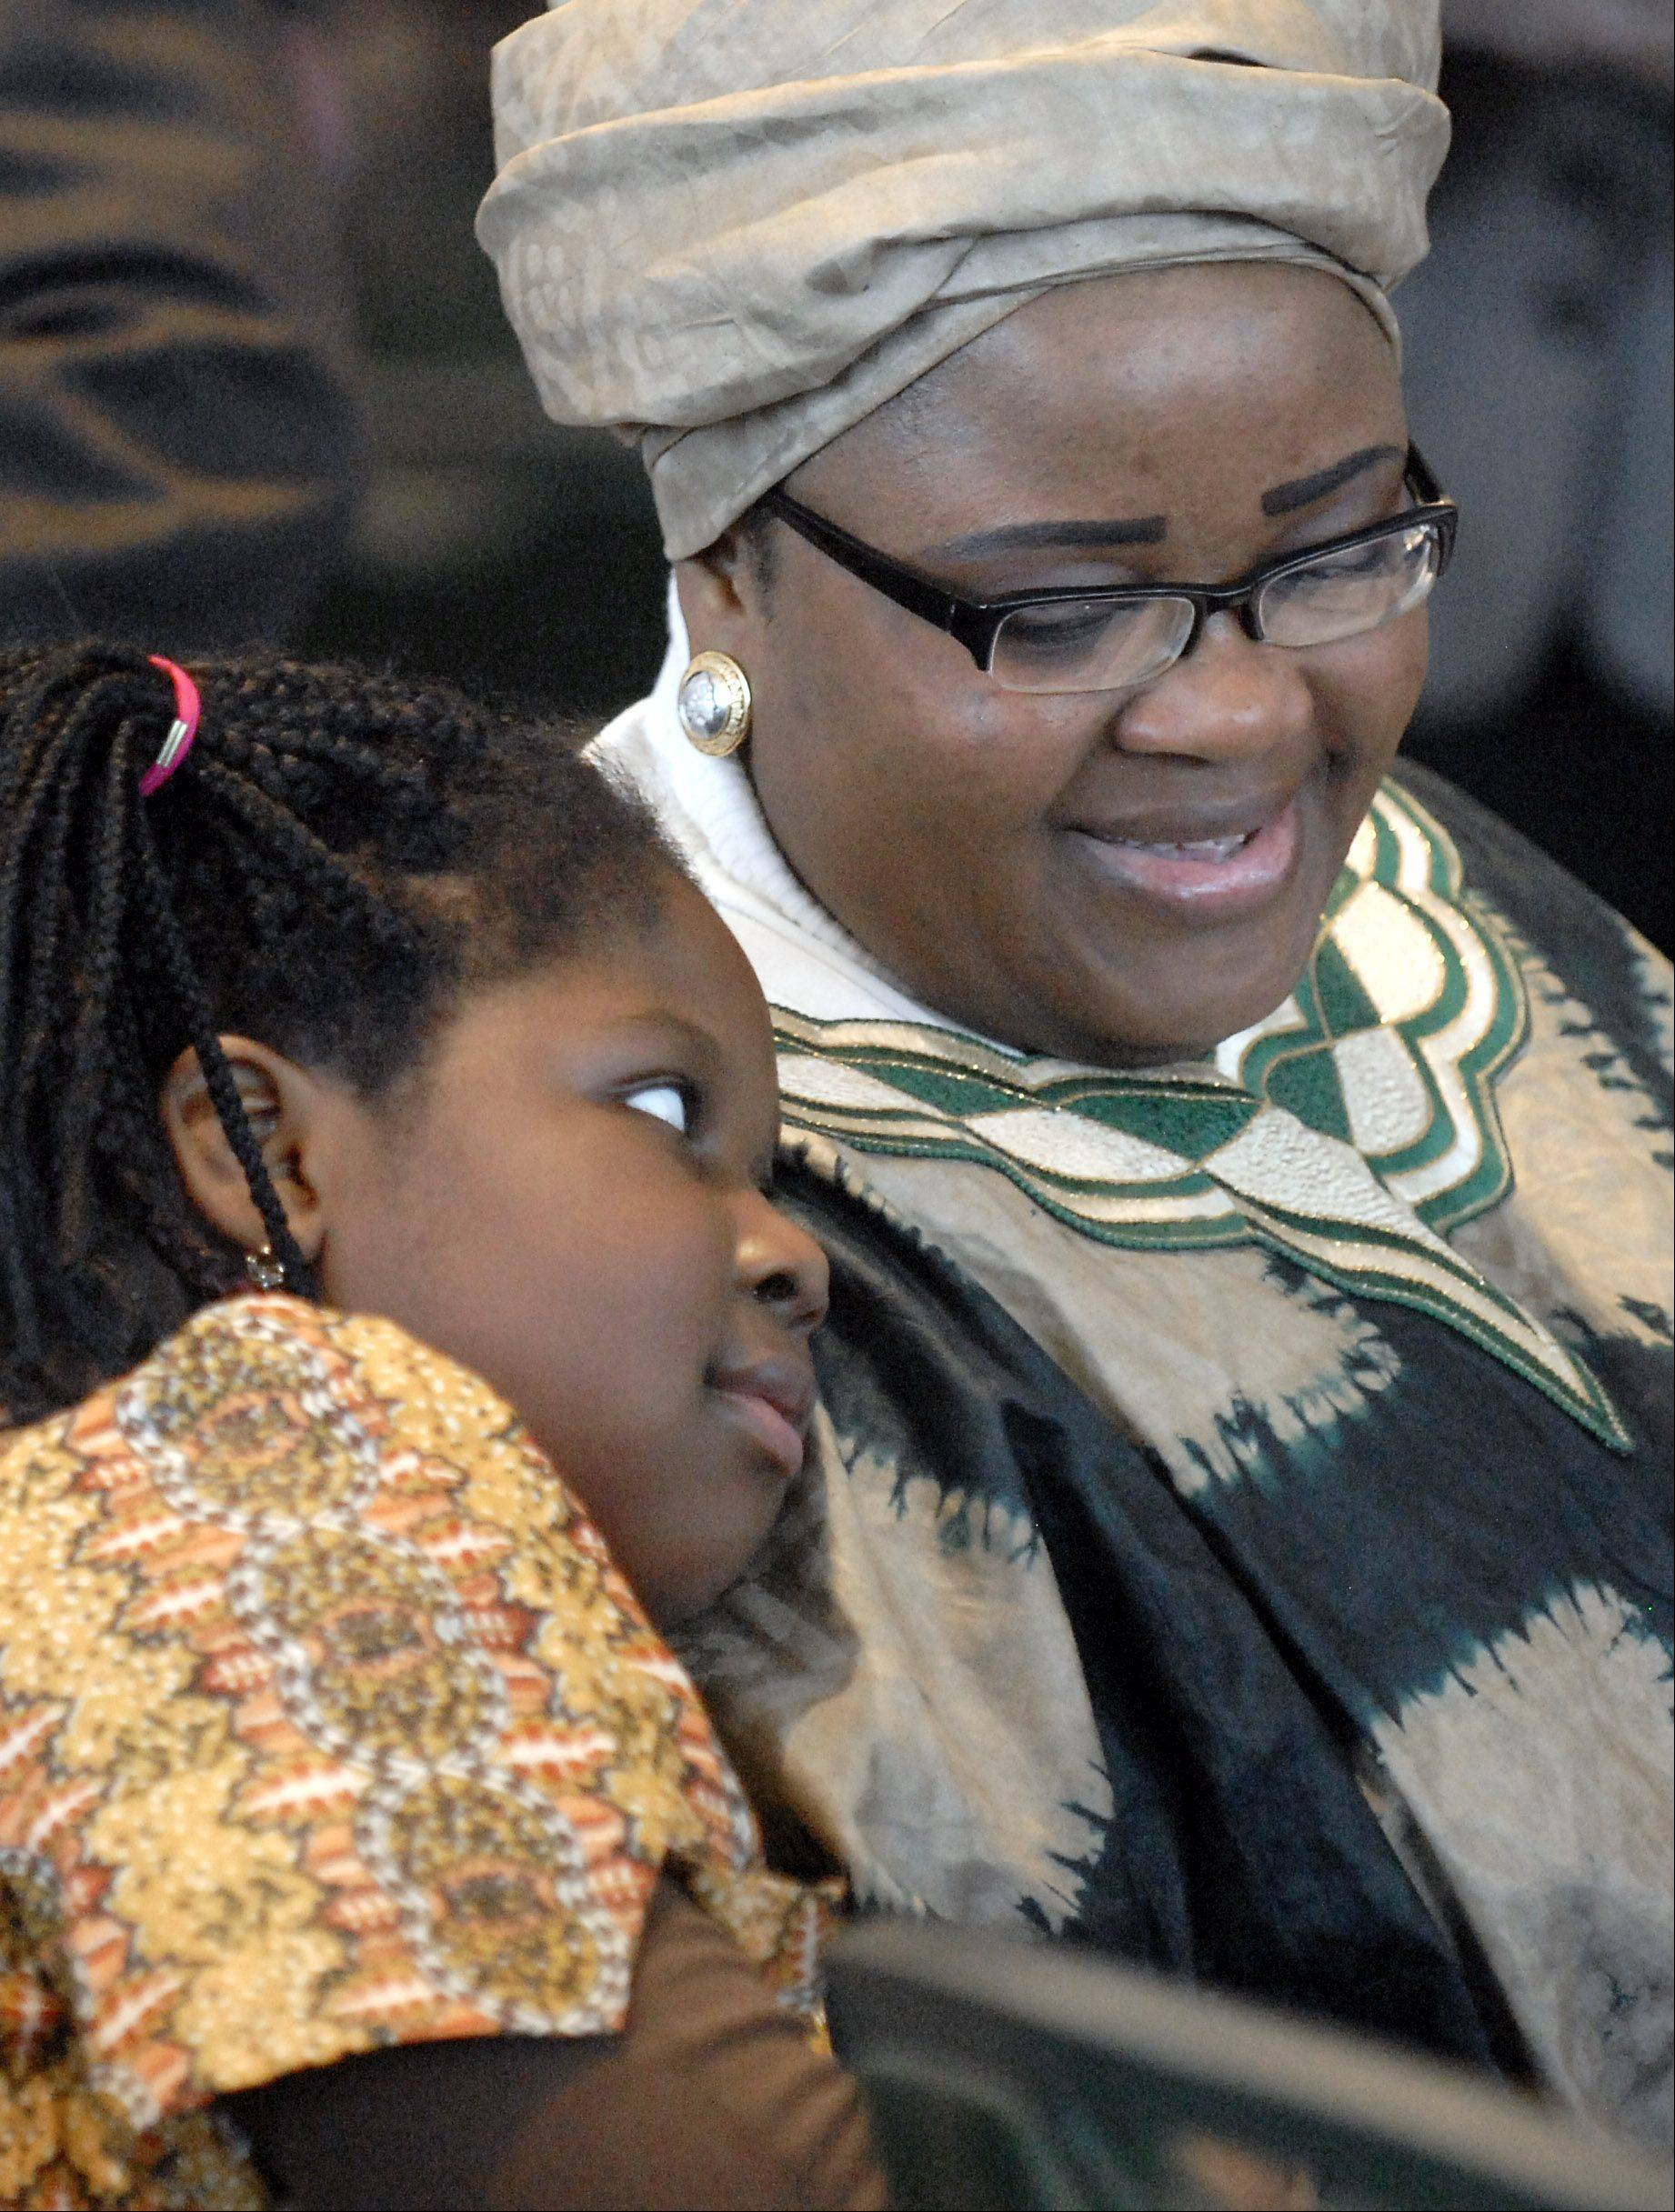 Zoe-Anna Wilson, 7, of Bolingbrook rests her head on her mother Daisy Viyuoh's shoulder during the 27th annual Dr. Martin Luther King, Jr., Prayer Breakfast held at The Centre in Elgin last year. Zoe-Anna's elder sister, Phebe, 8, also joined them. It was their first time attending the event.